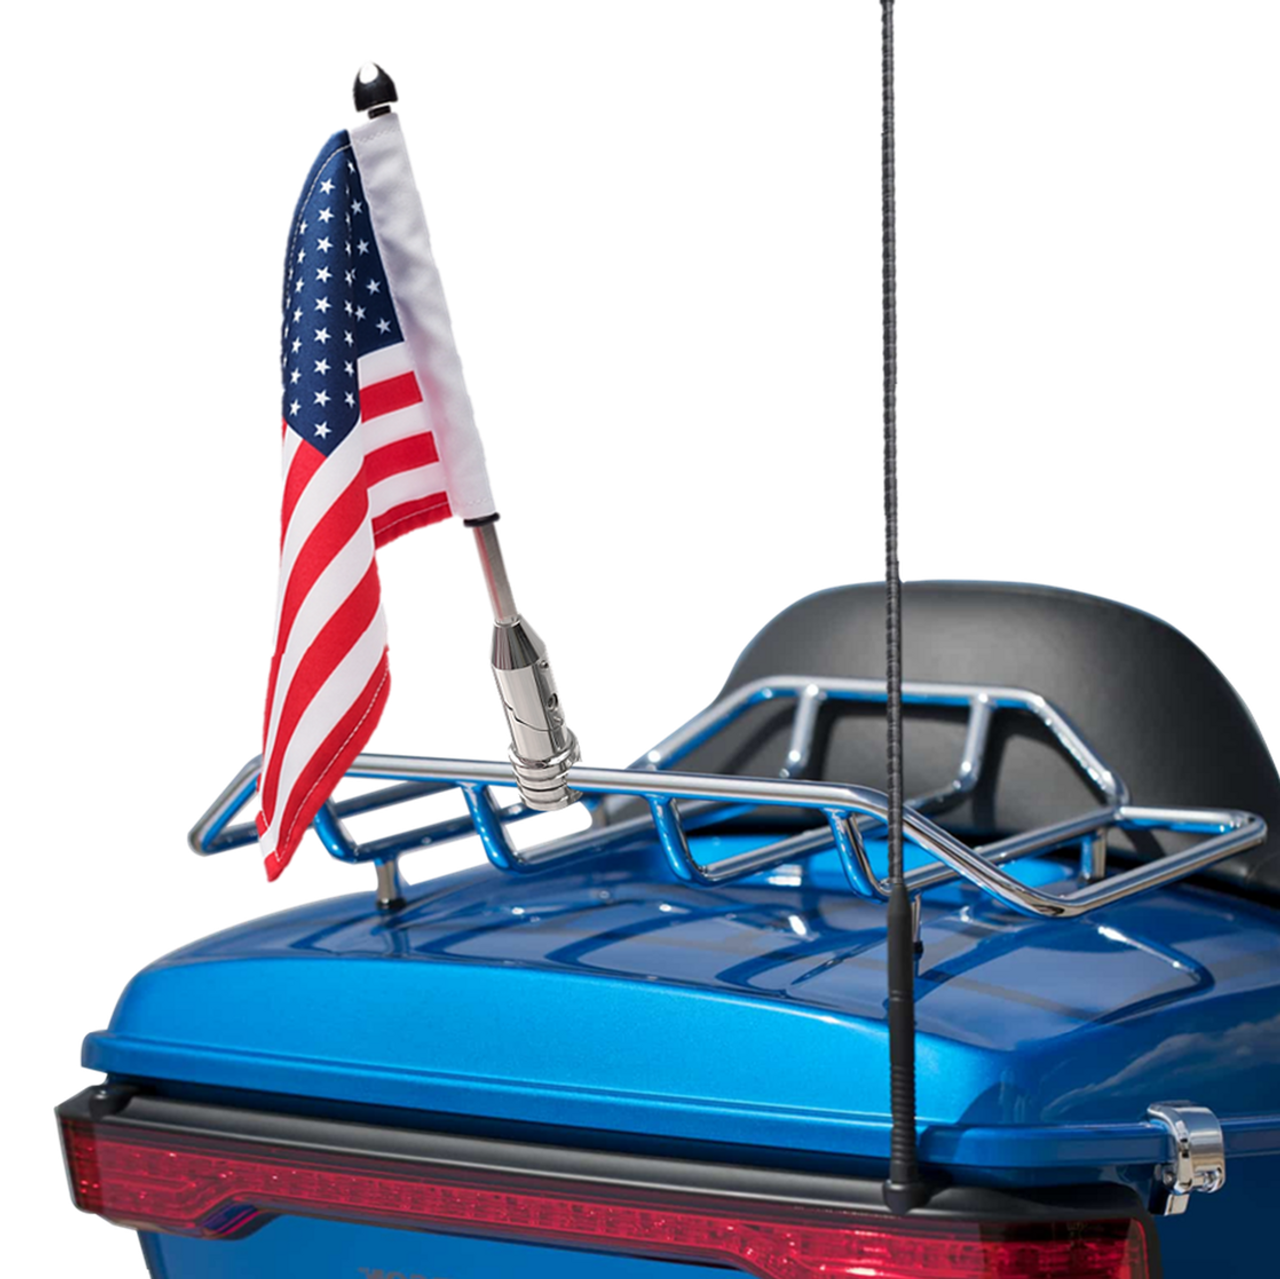 """Folding mount with 9"""" pole, standard cone topper and 6""""x9"""" USA flag on Harley Tour Pack Rack (rack not included)"""